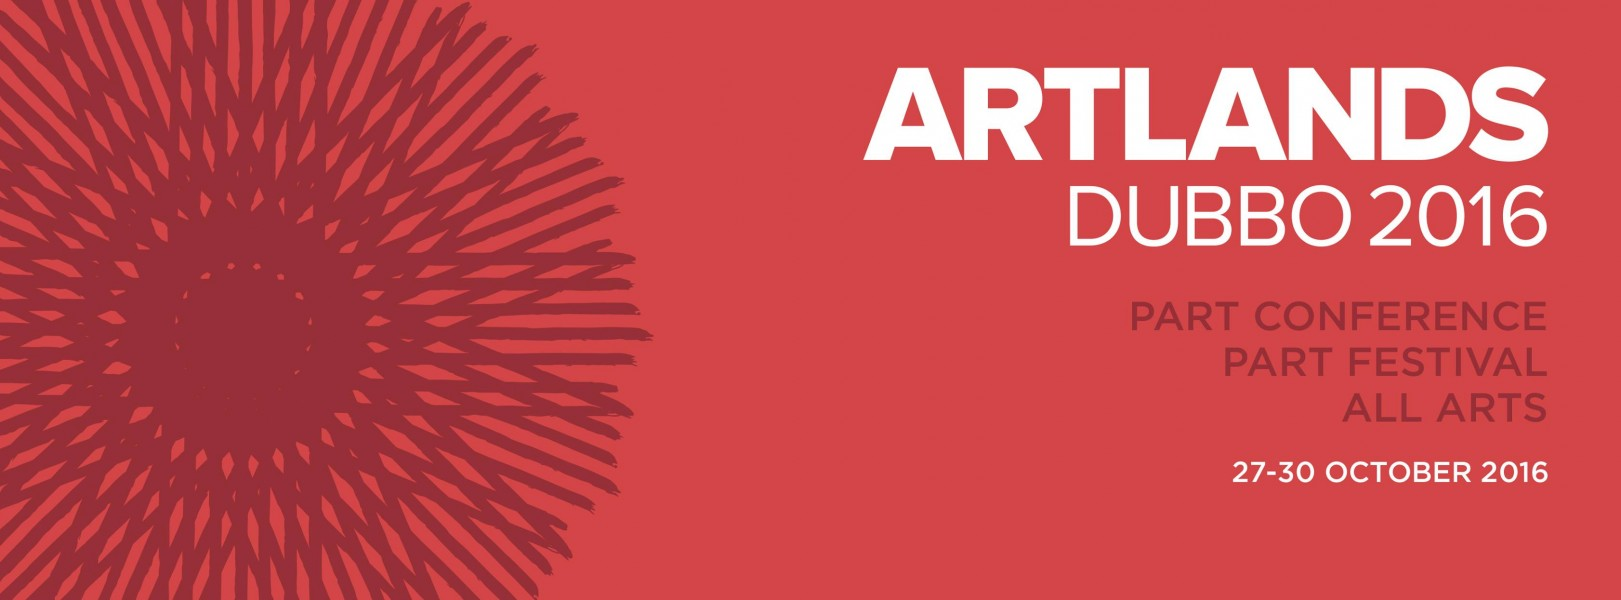 Artlands Dubbo Conference to emphasise the strength of regional arts